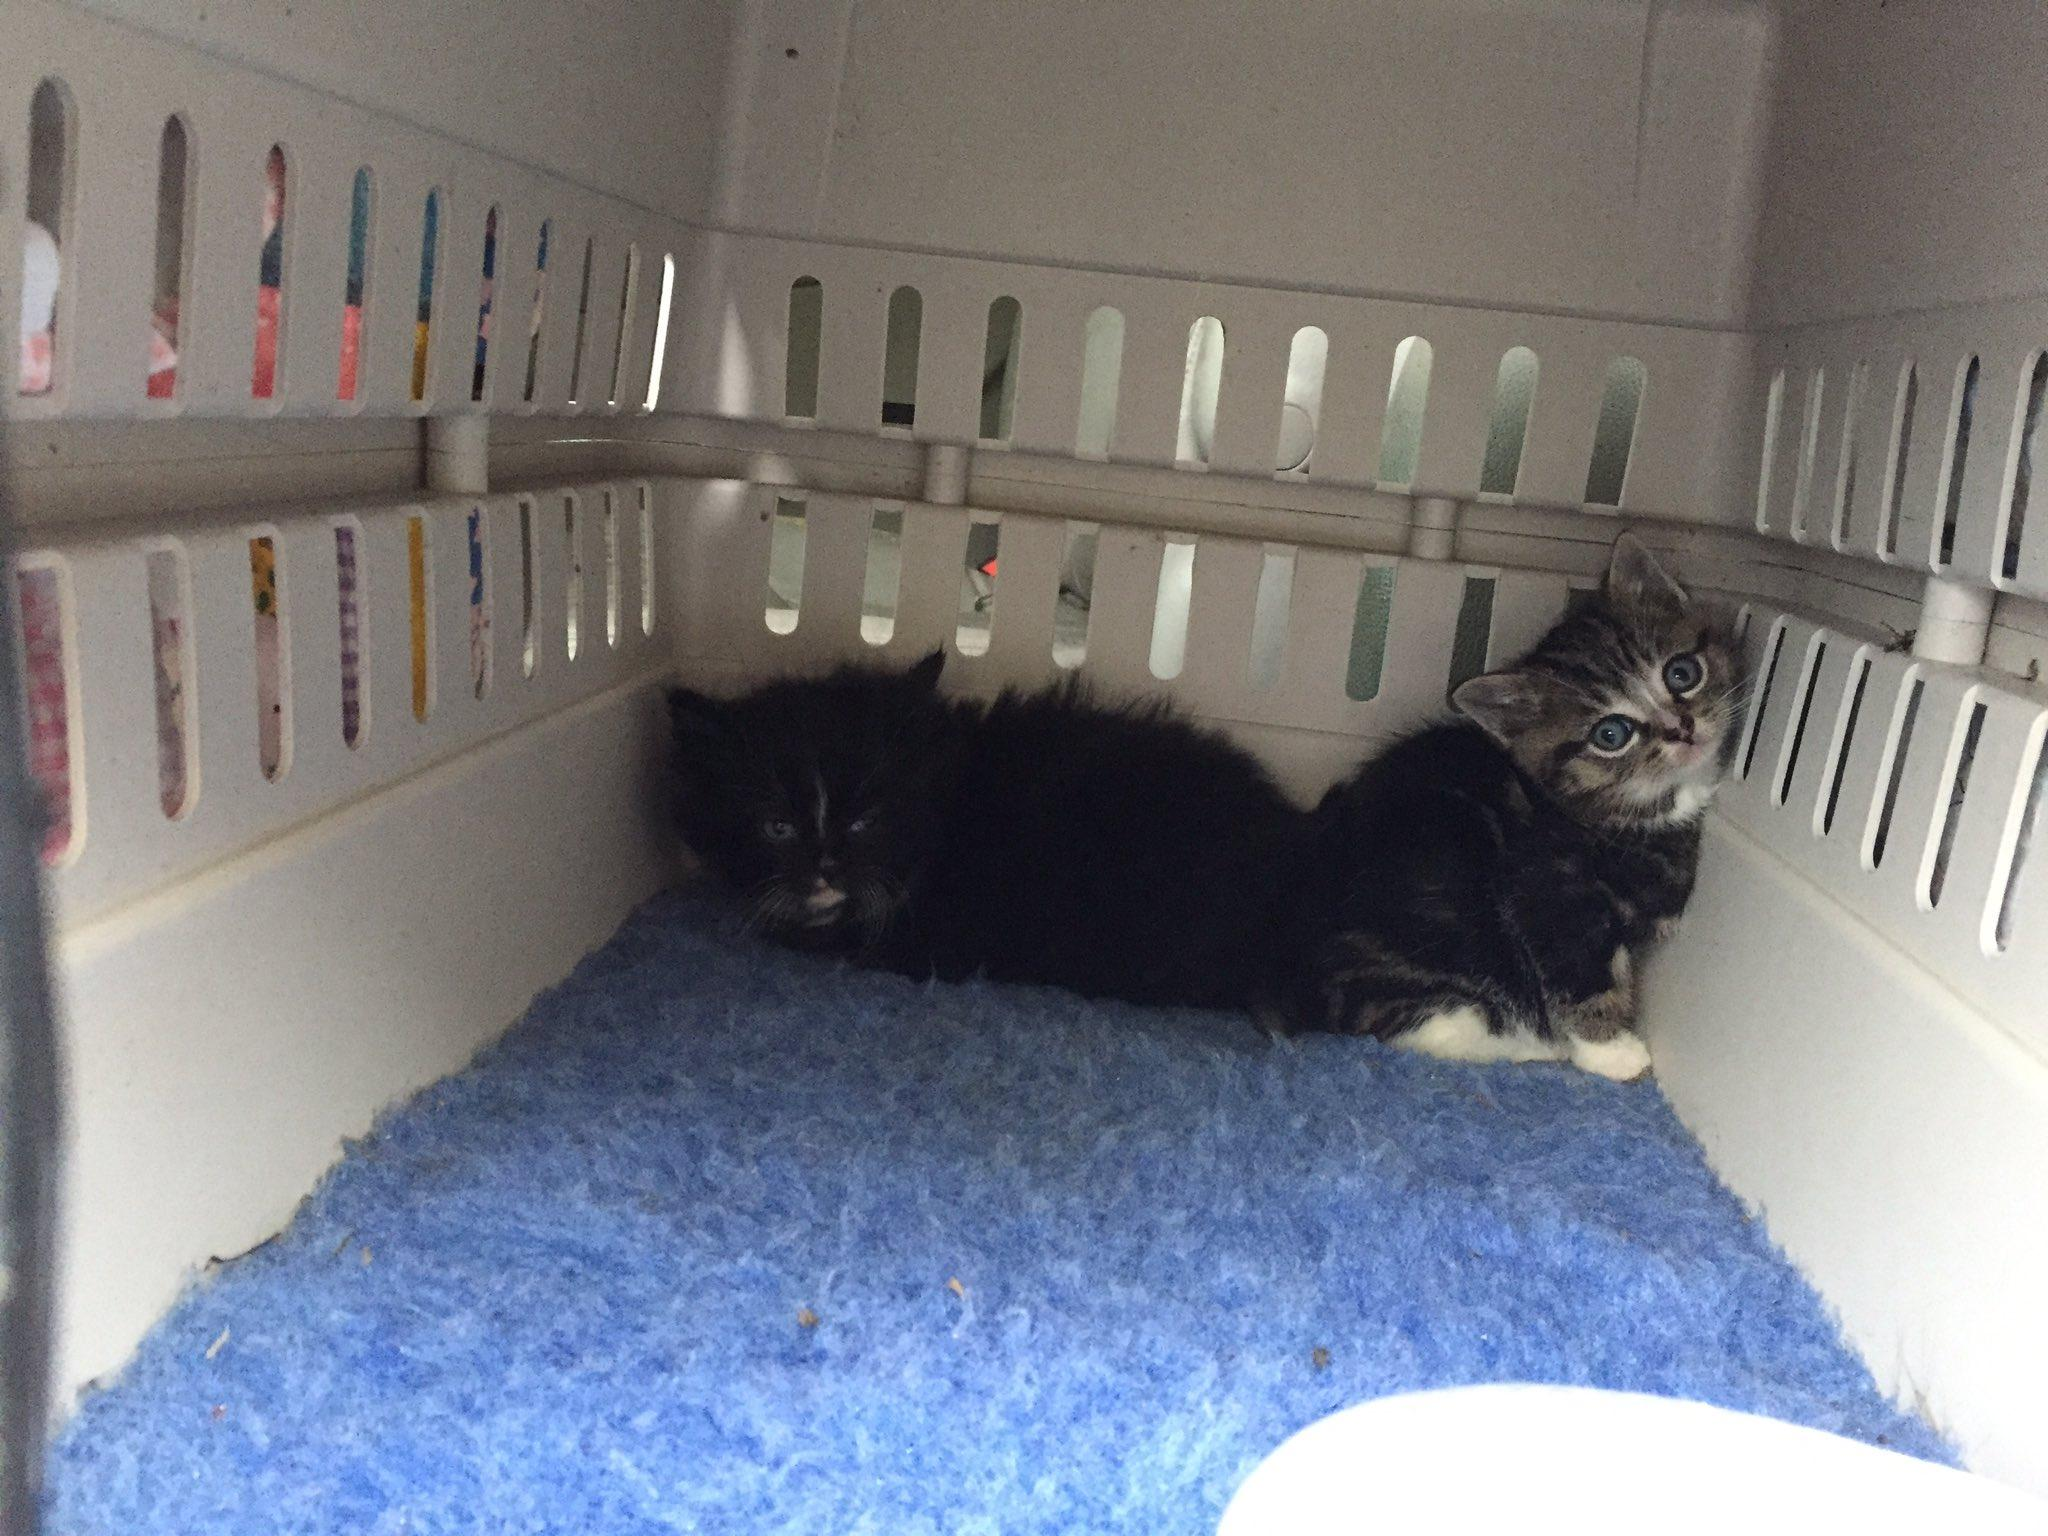 These are the two kittens who were rescued.